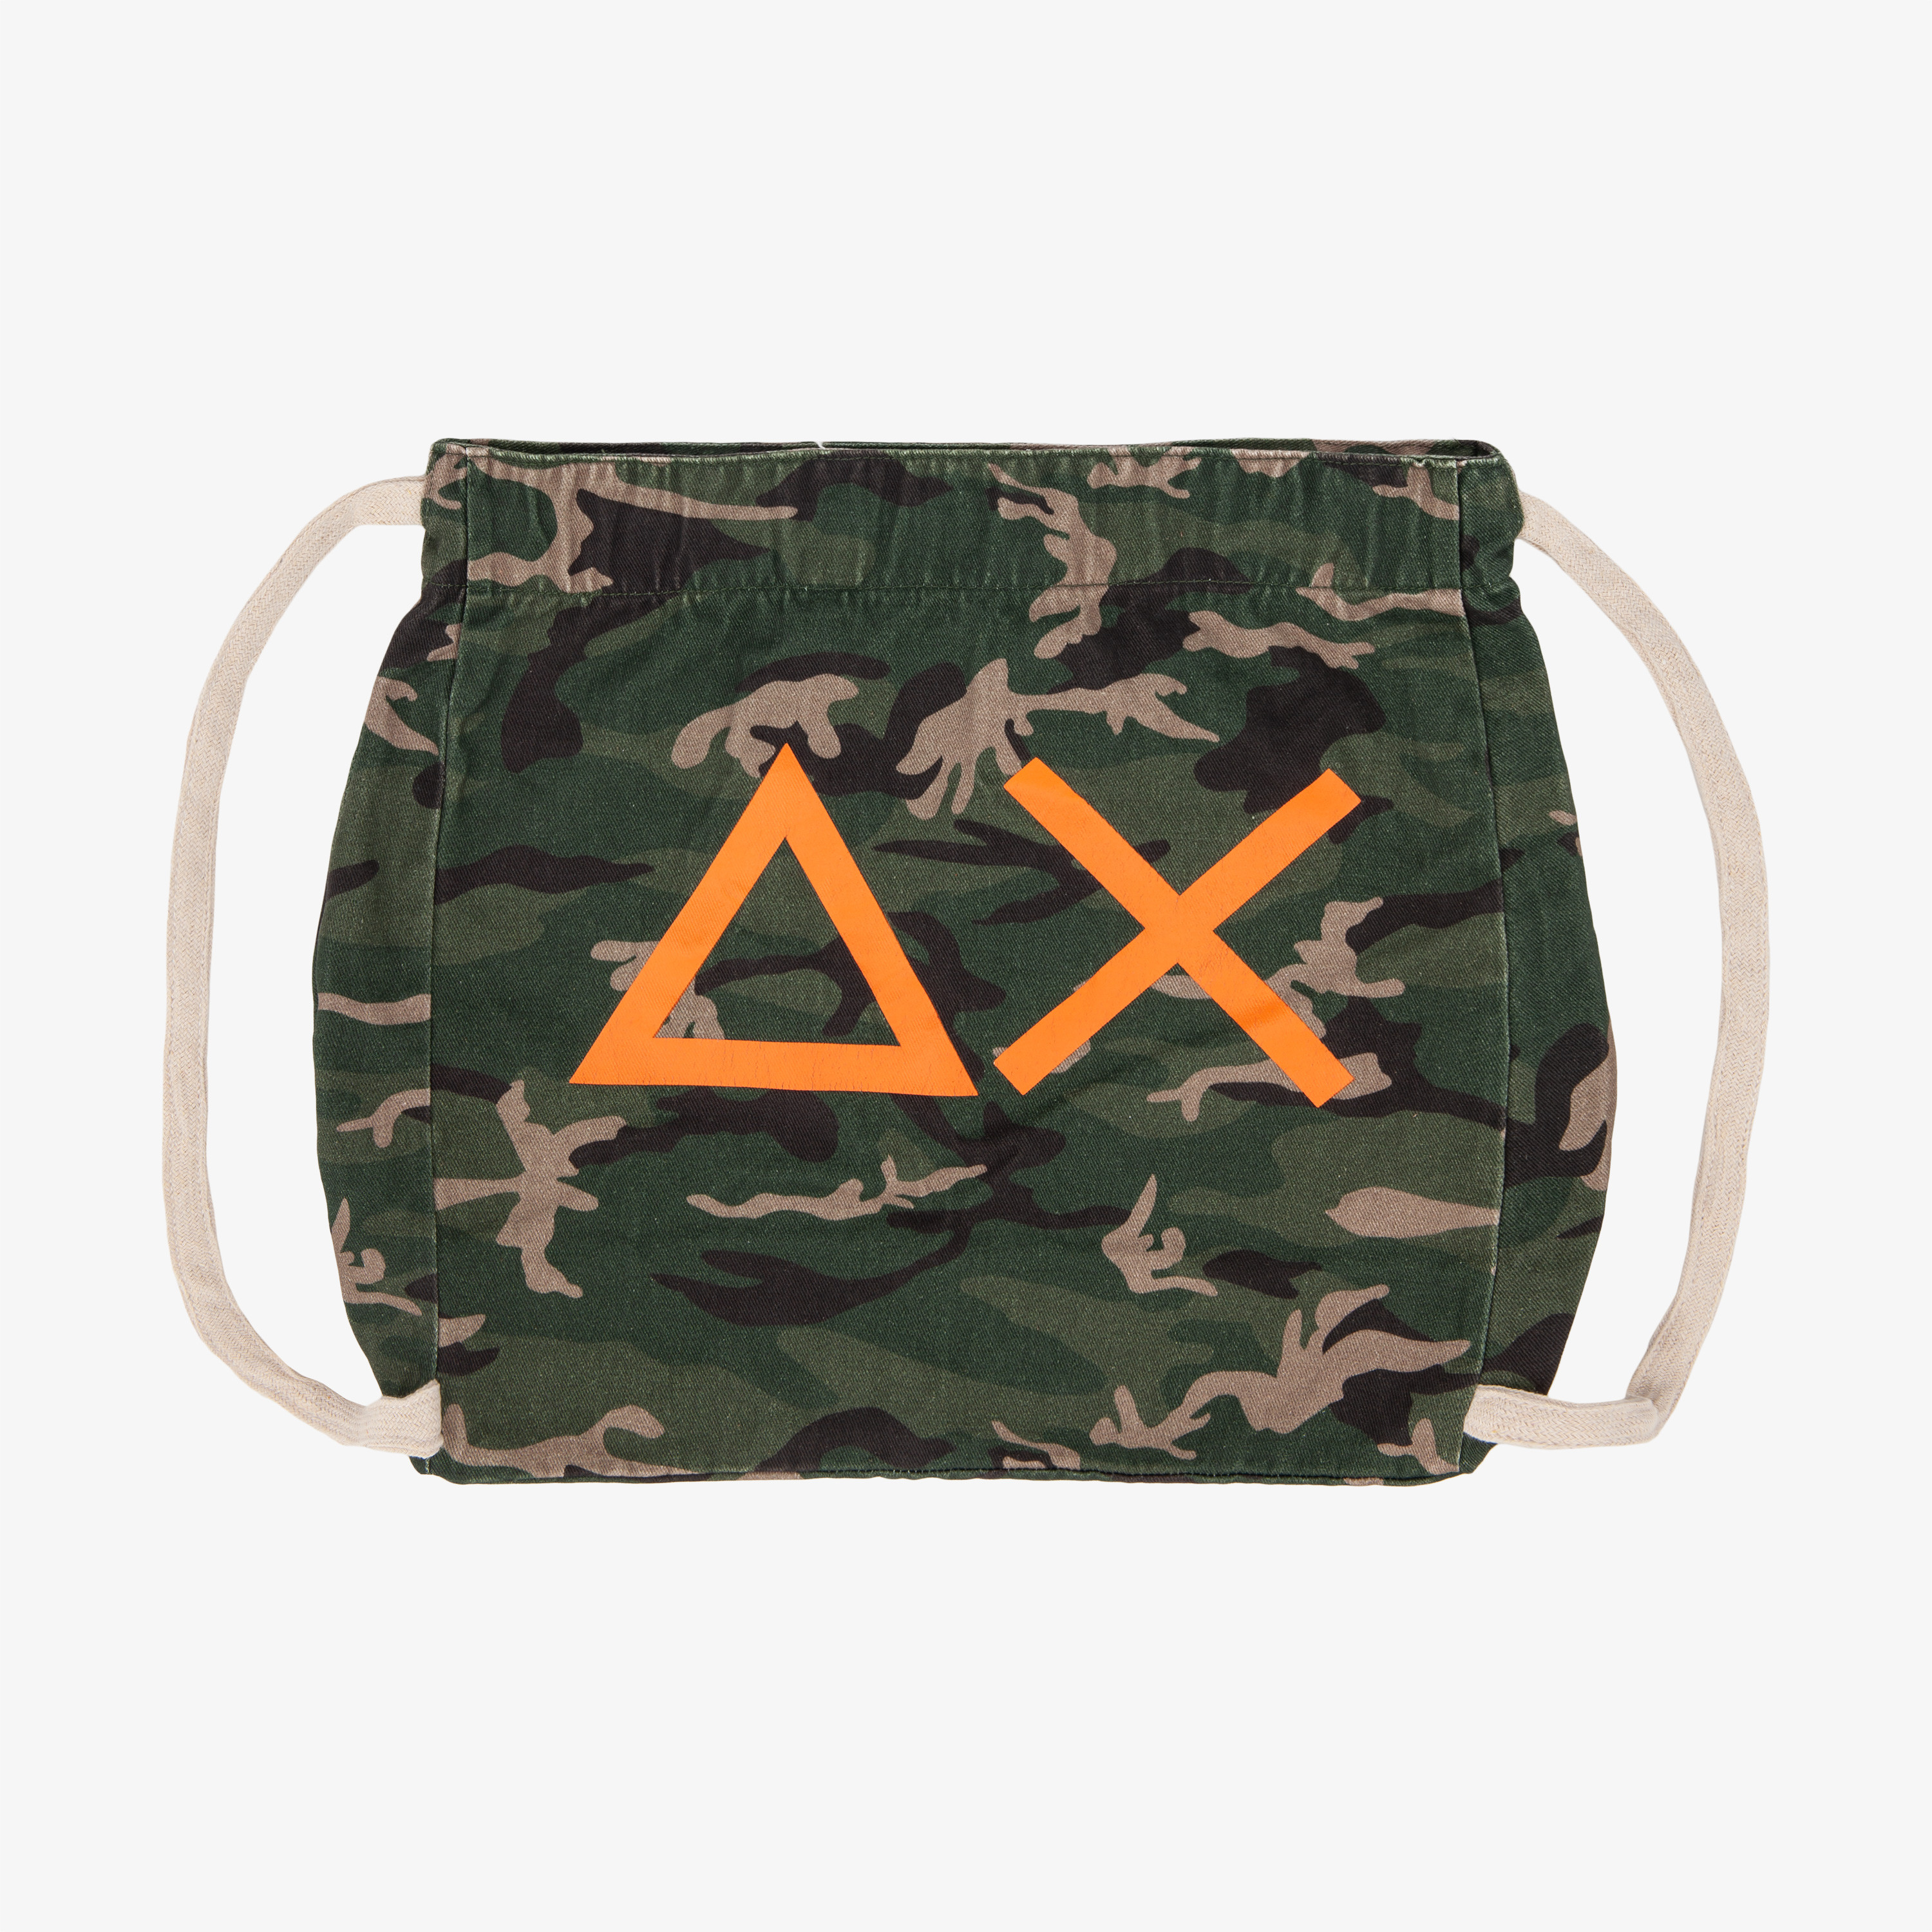 COTTON BAG GREEN CAMOUFLAGE